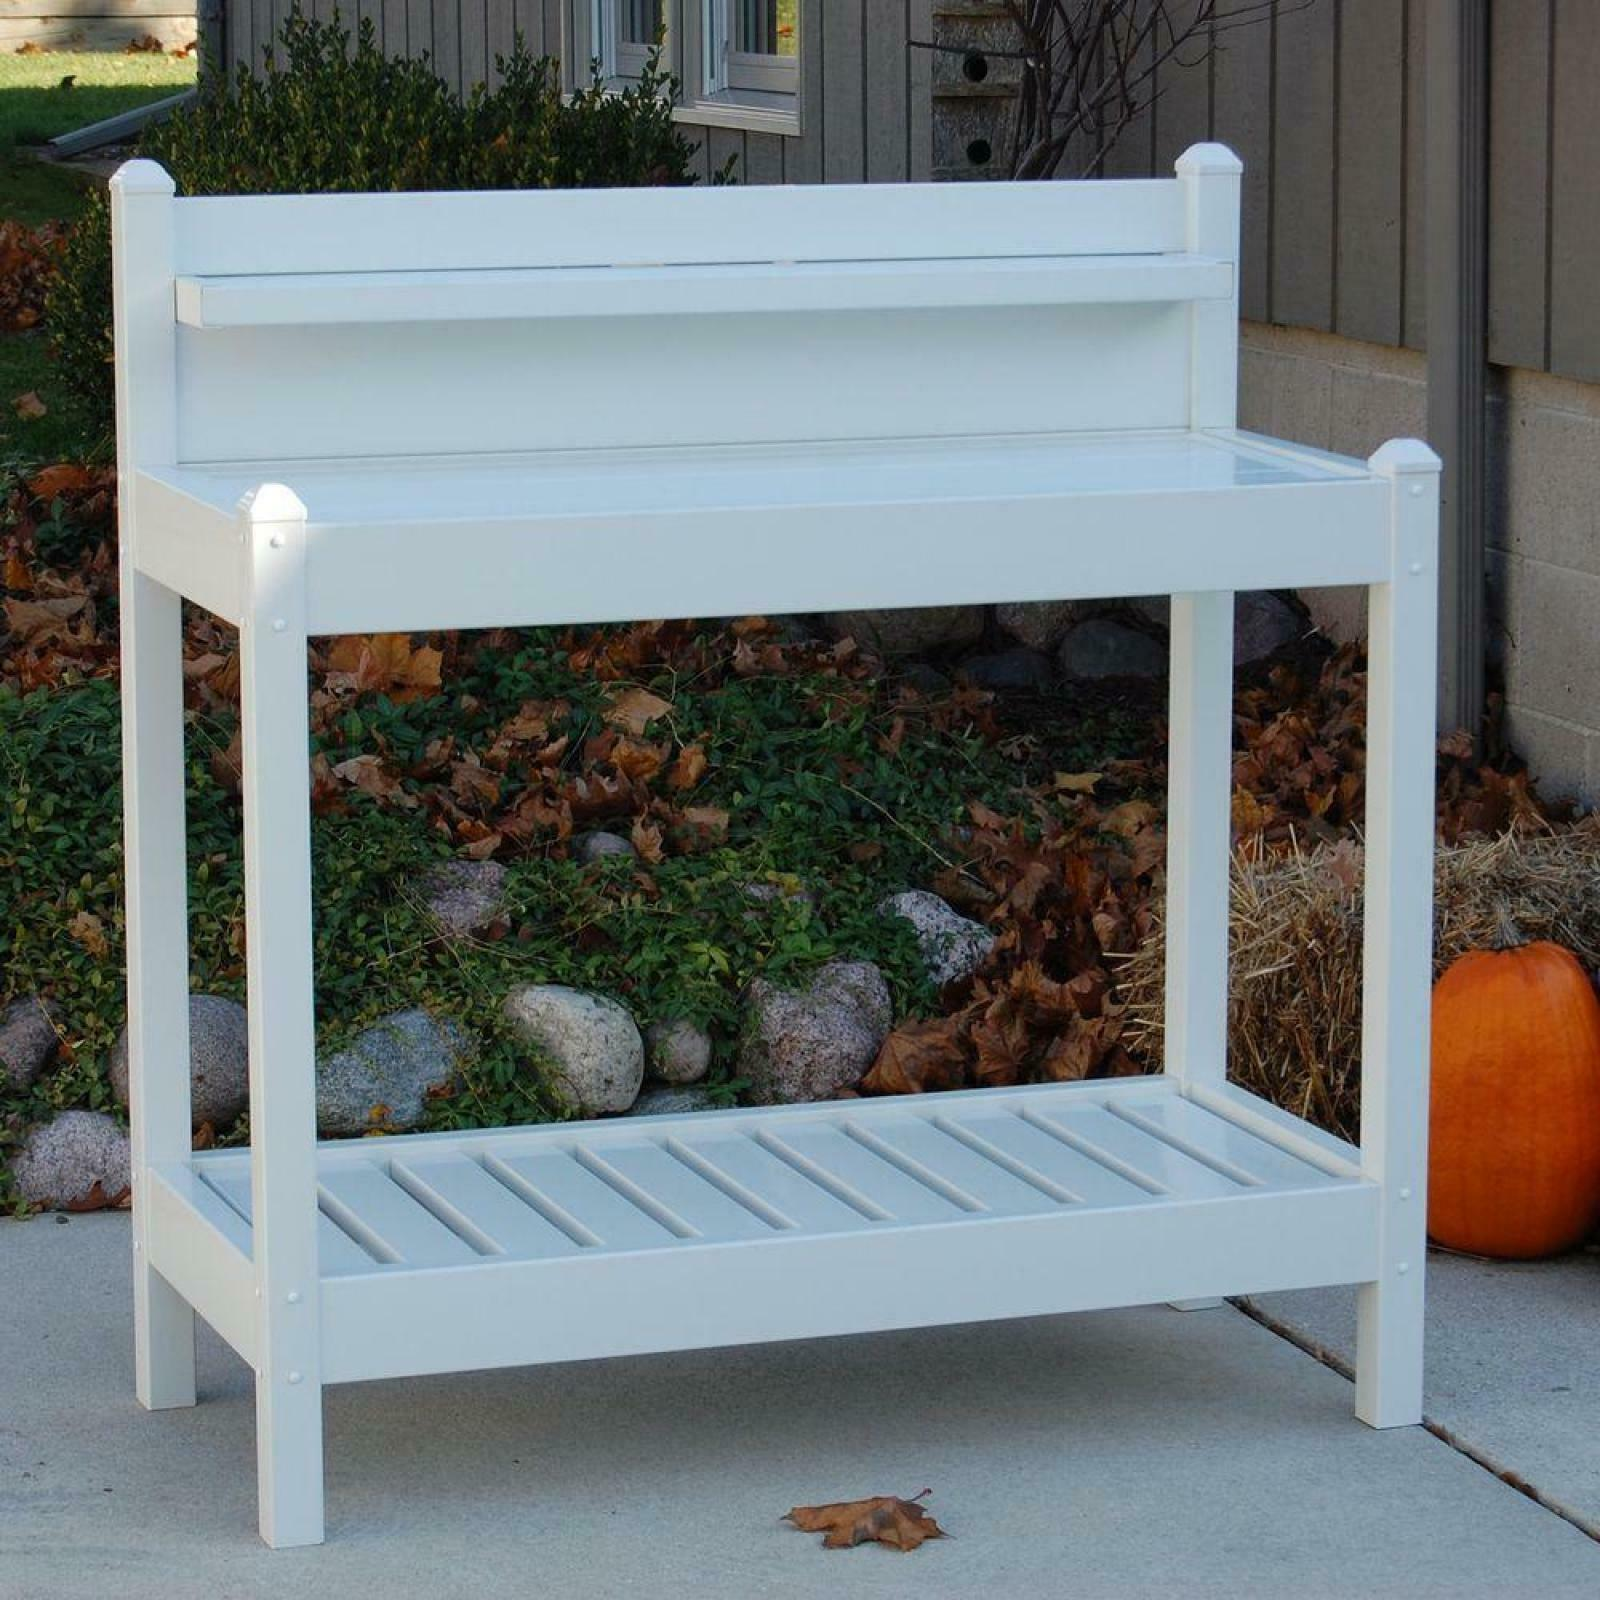 Amazing Details About Potting Plant Bench Garden Outdoor Patio Planting White Vinyl Work Table Station Caraccident5 Cool Chair Designs And Ideas Caraccident5Info